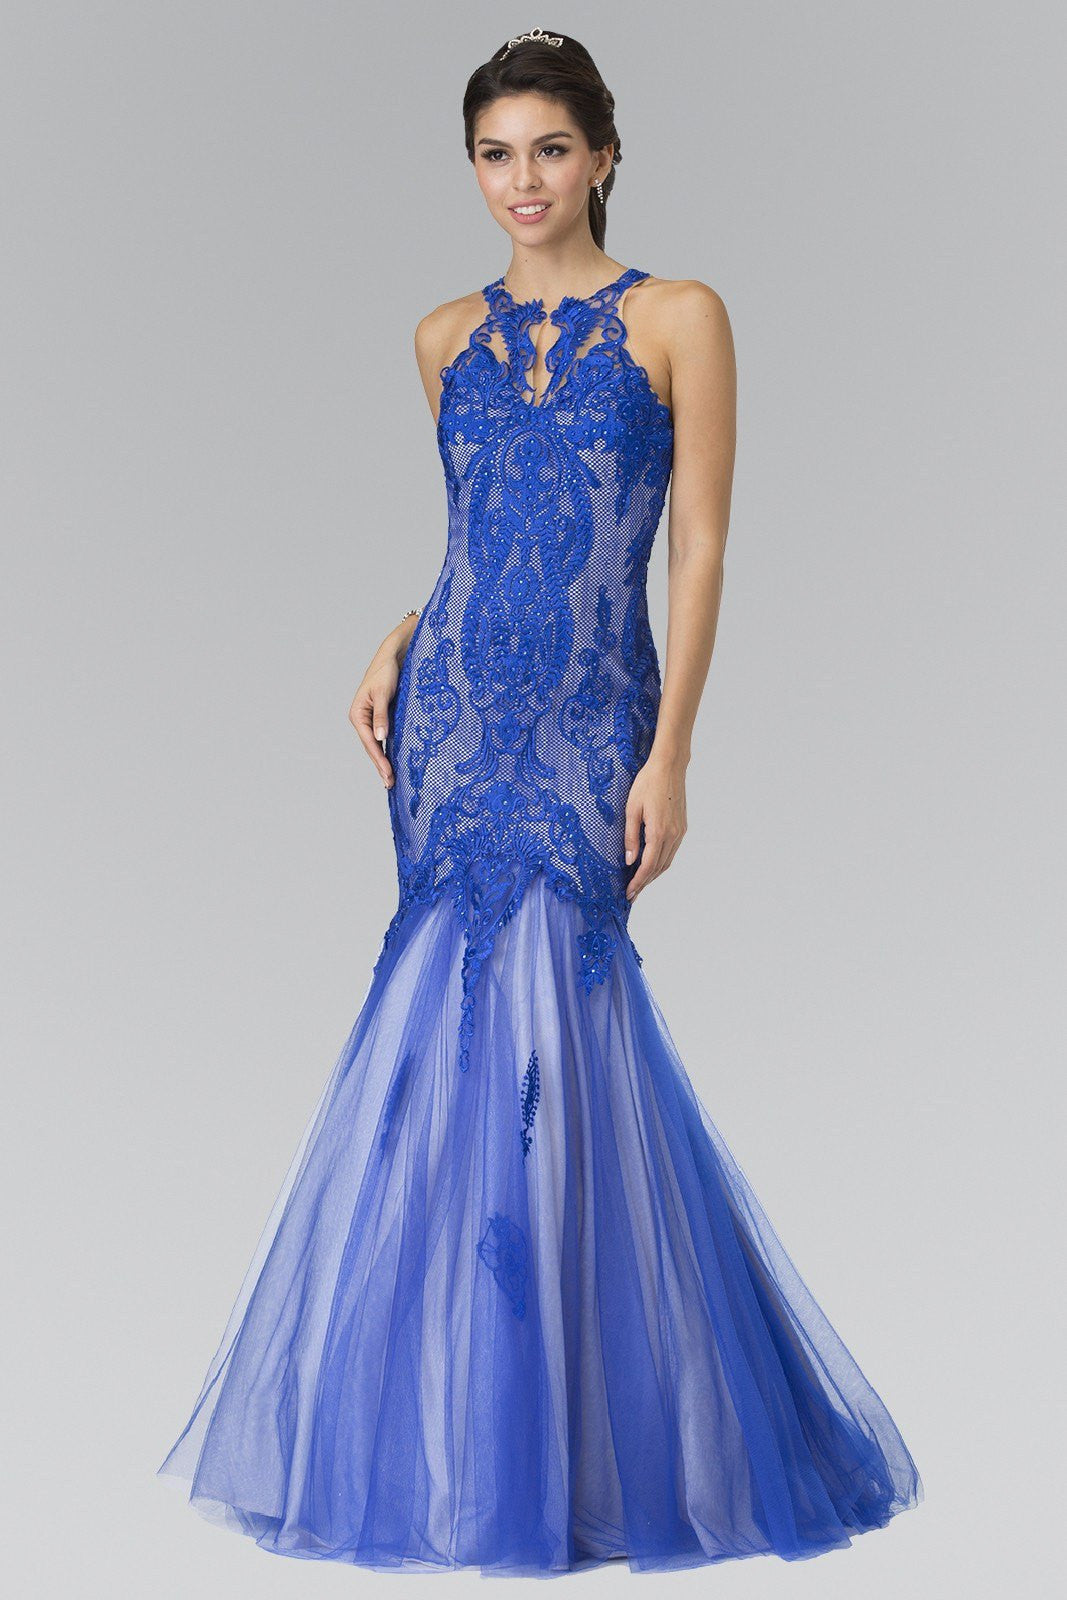 Sexy Prom Dresses Stunning 2017 Lace Plus Size Merma Simply Fab Dress